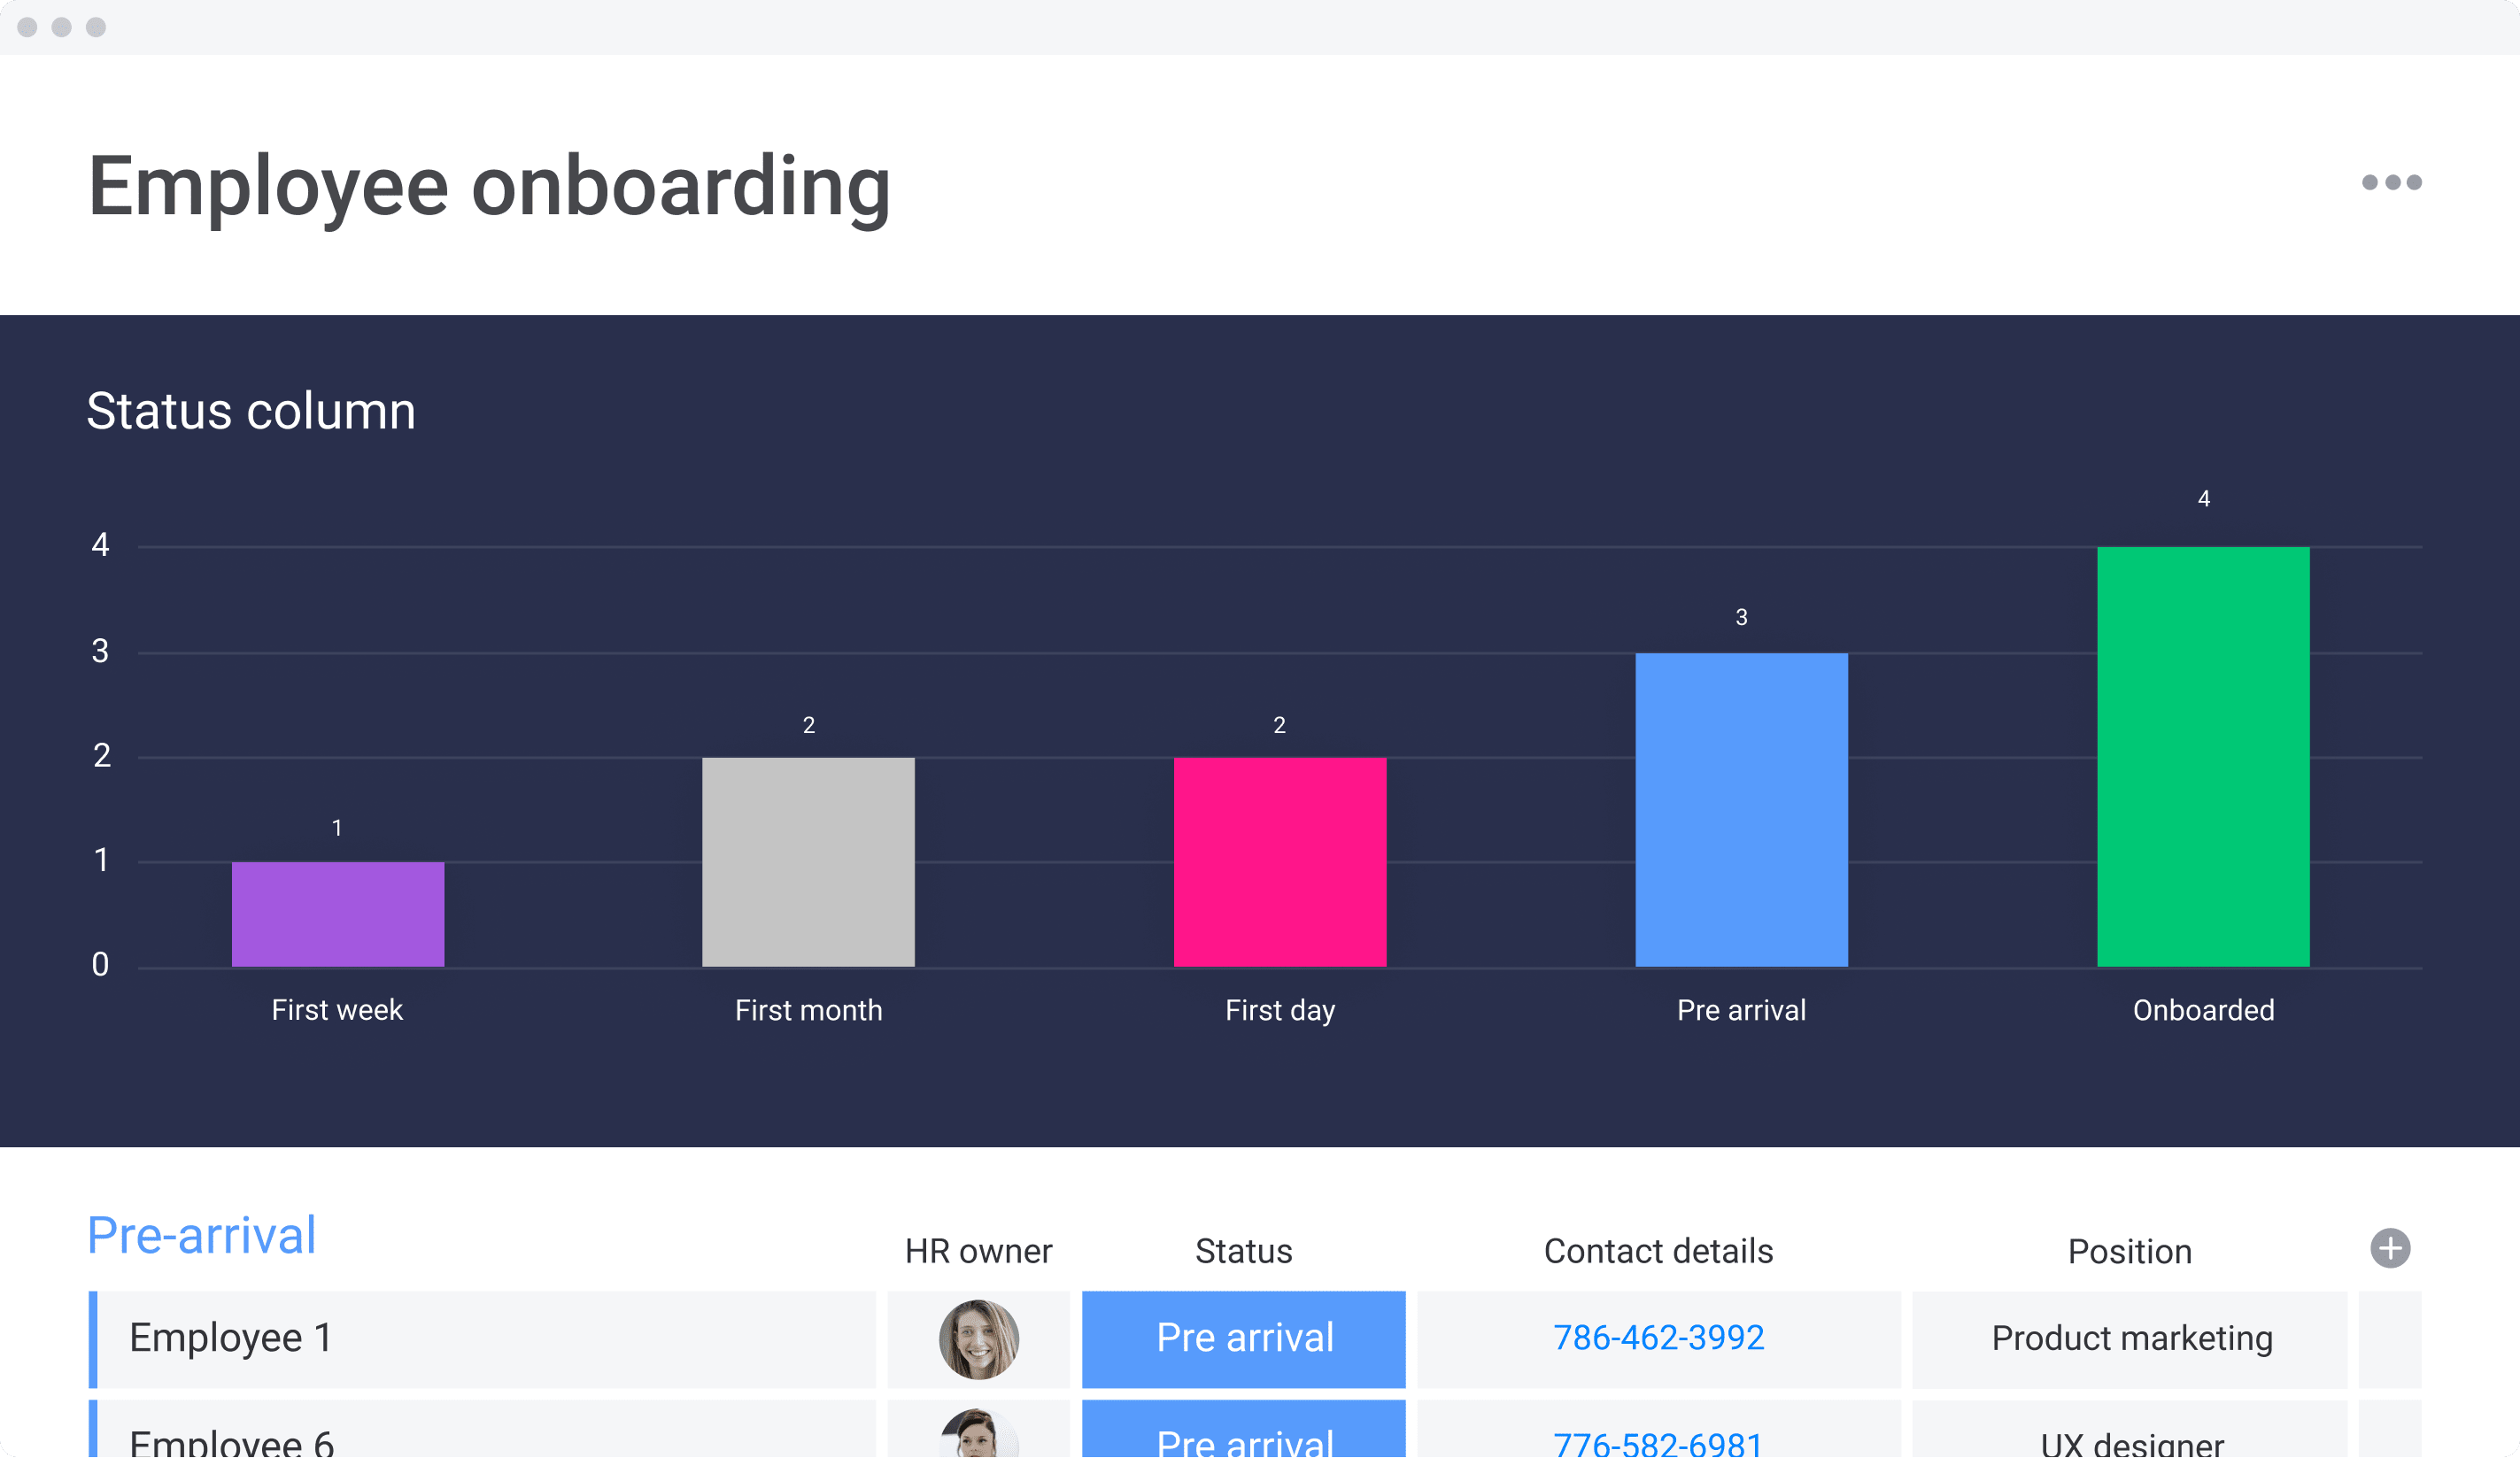 new employees onboarding first